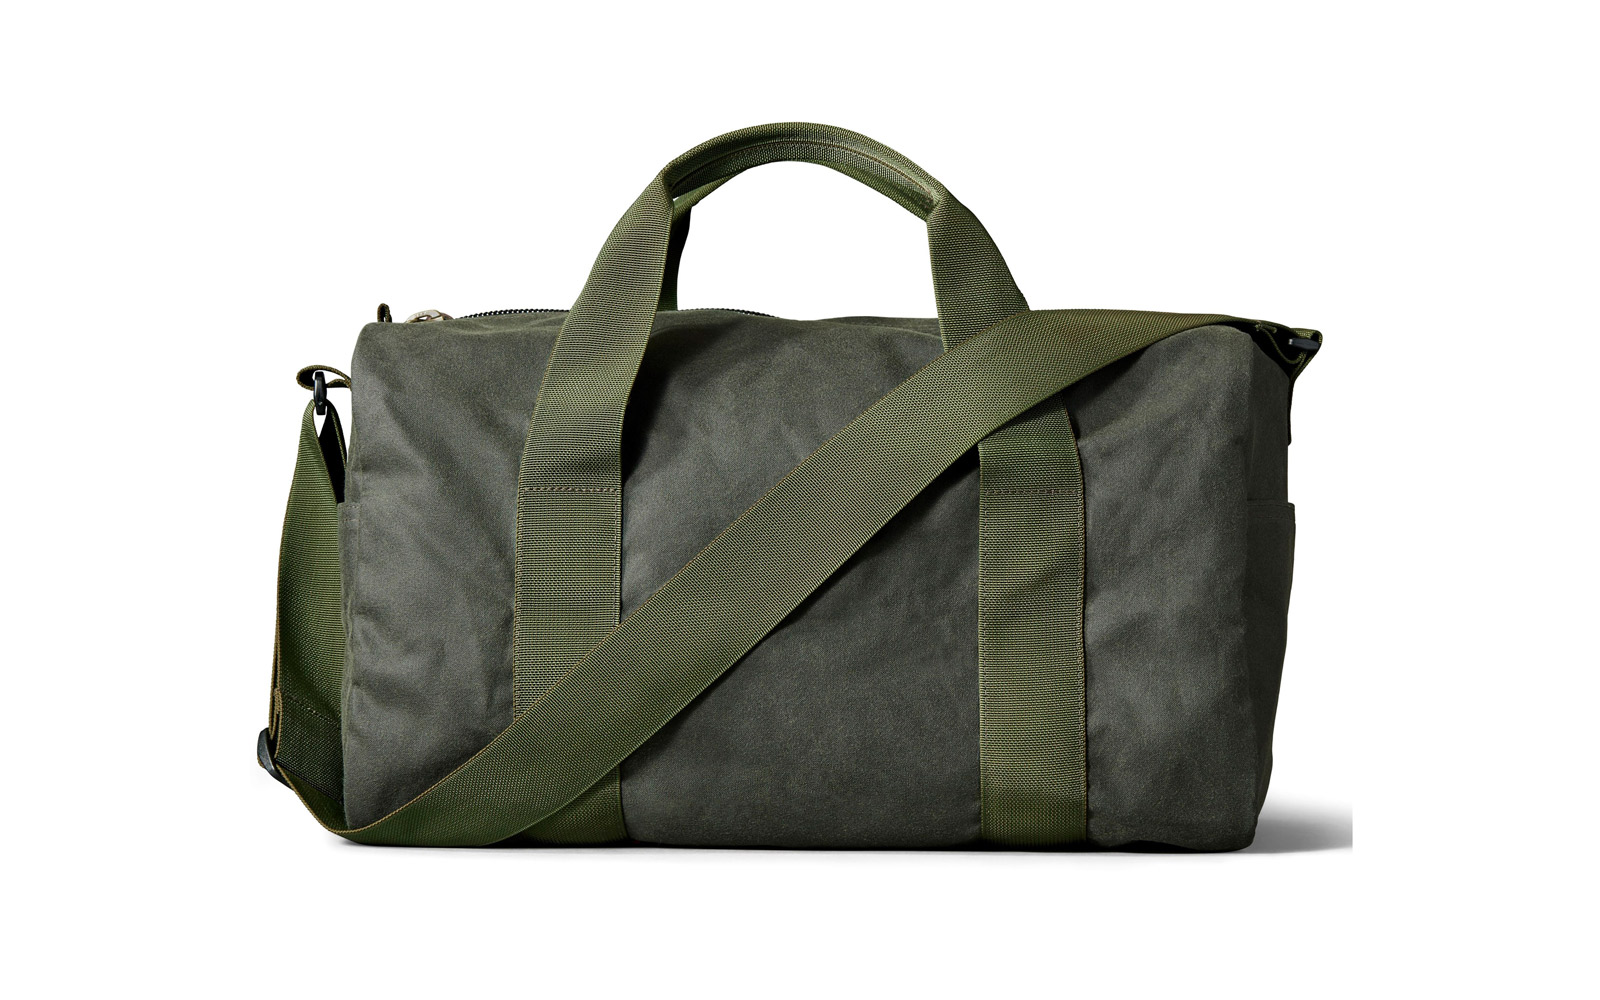 ffed009297e8ca The Best Weekender Bags, According to Travel Editors | Travel + Leisure